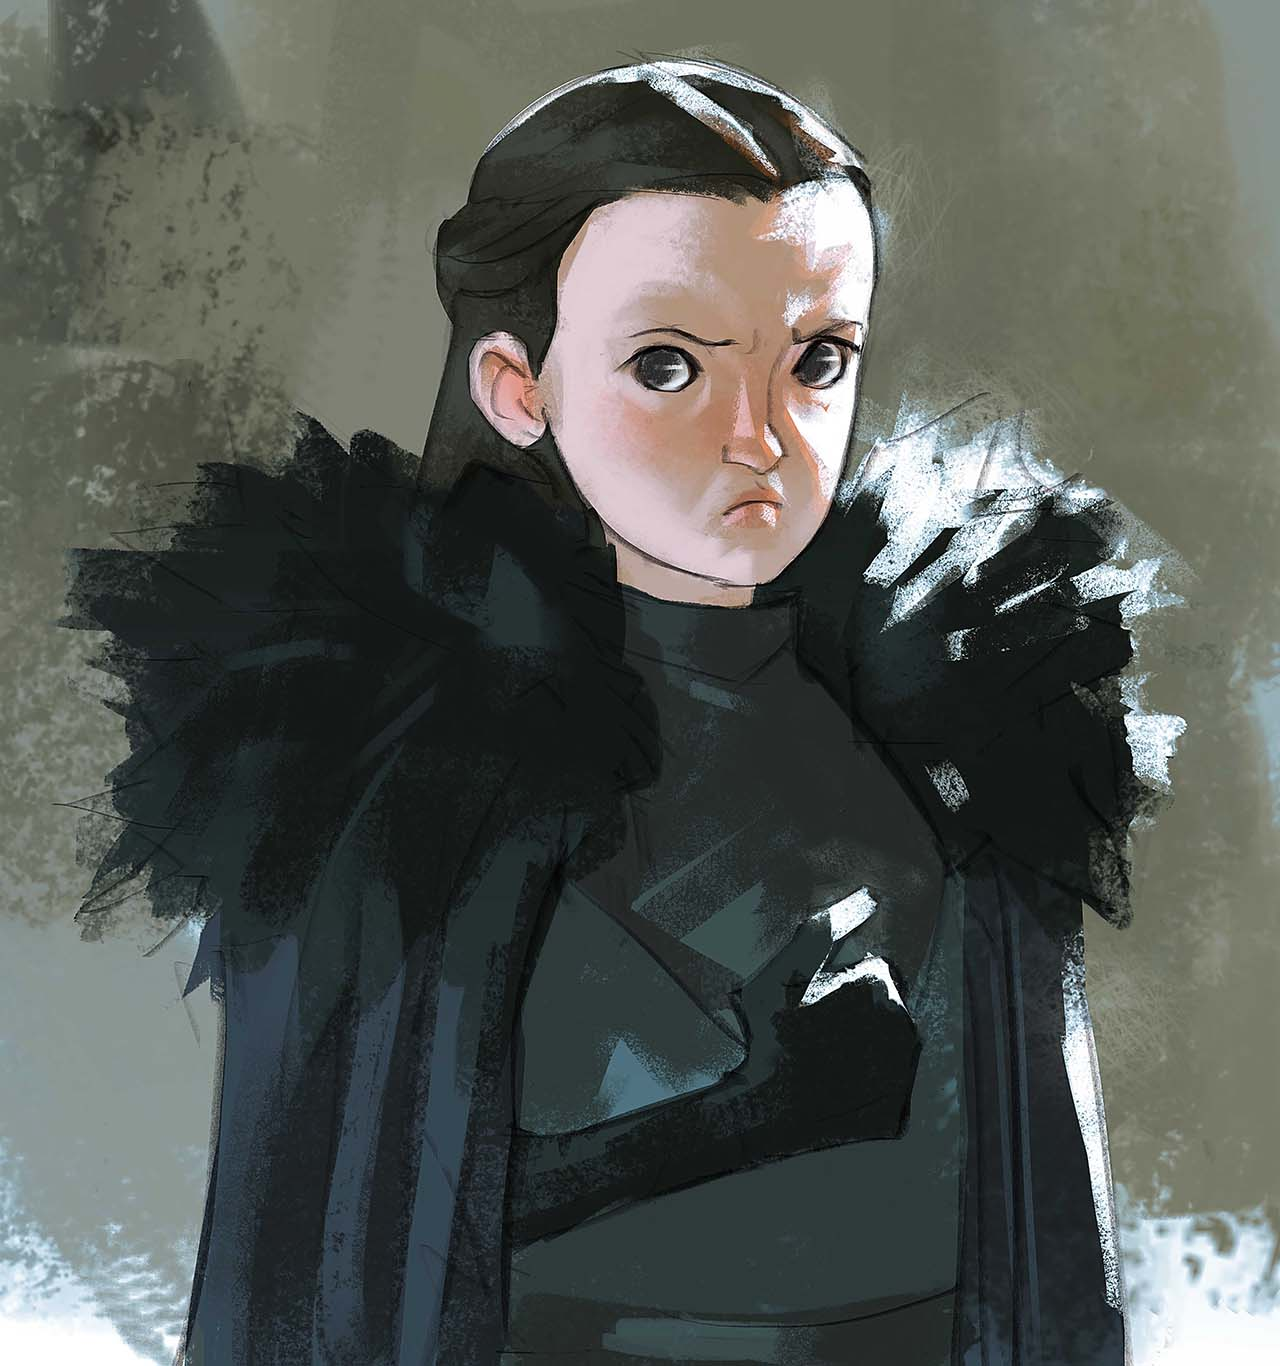 Artist Creates Unique Character Arts From Game Of Thrones – Lyanna Mormont Character Art By Ramón Nuñez